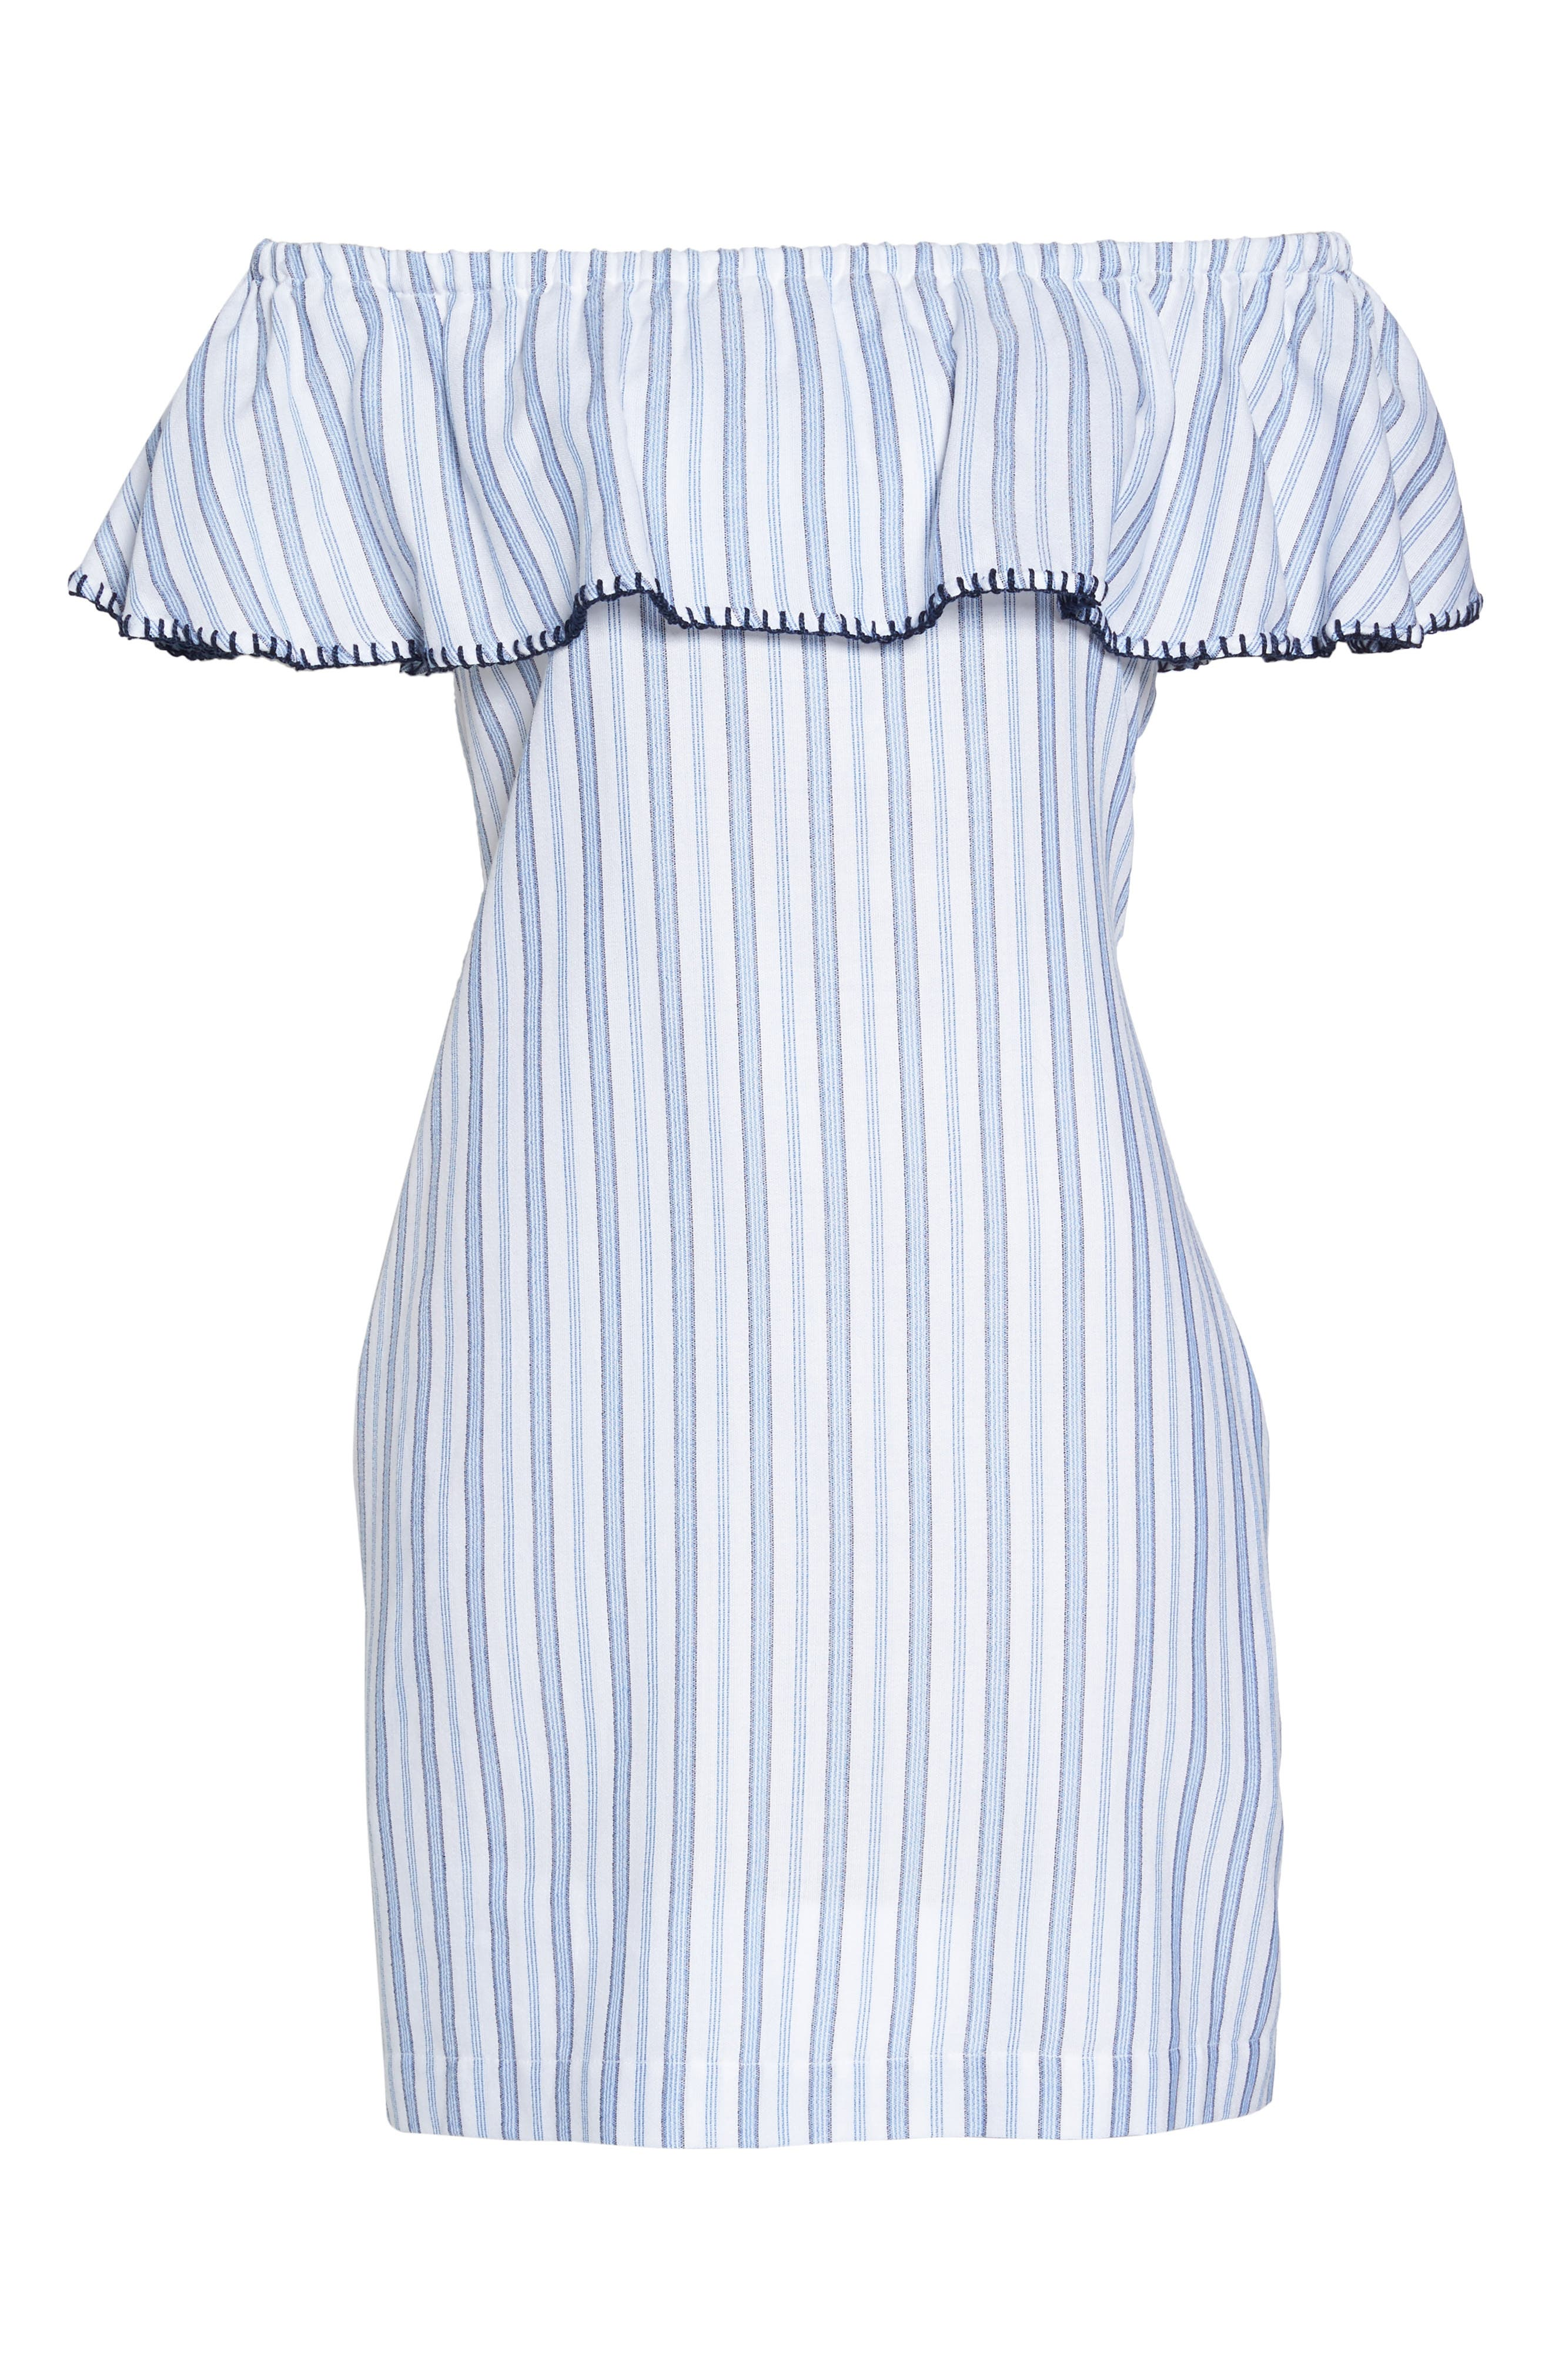 Ticking Stripe Off the Shoulder Cover-Up Dress,                             Alternate thumbnail 6, color,                             White